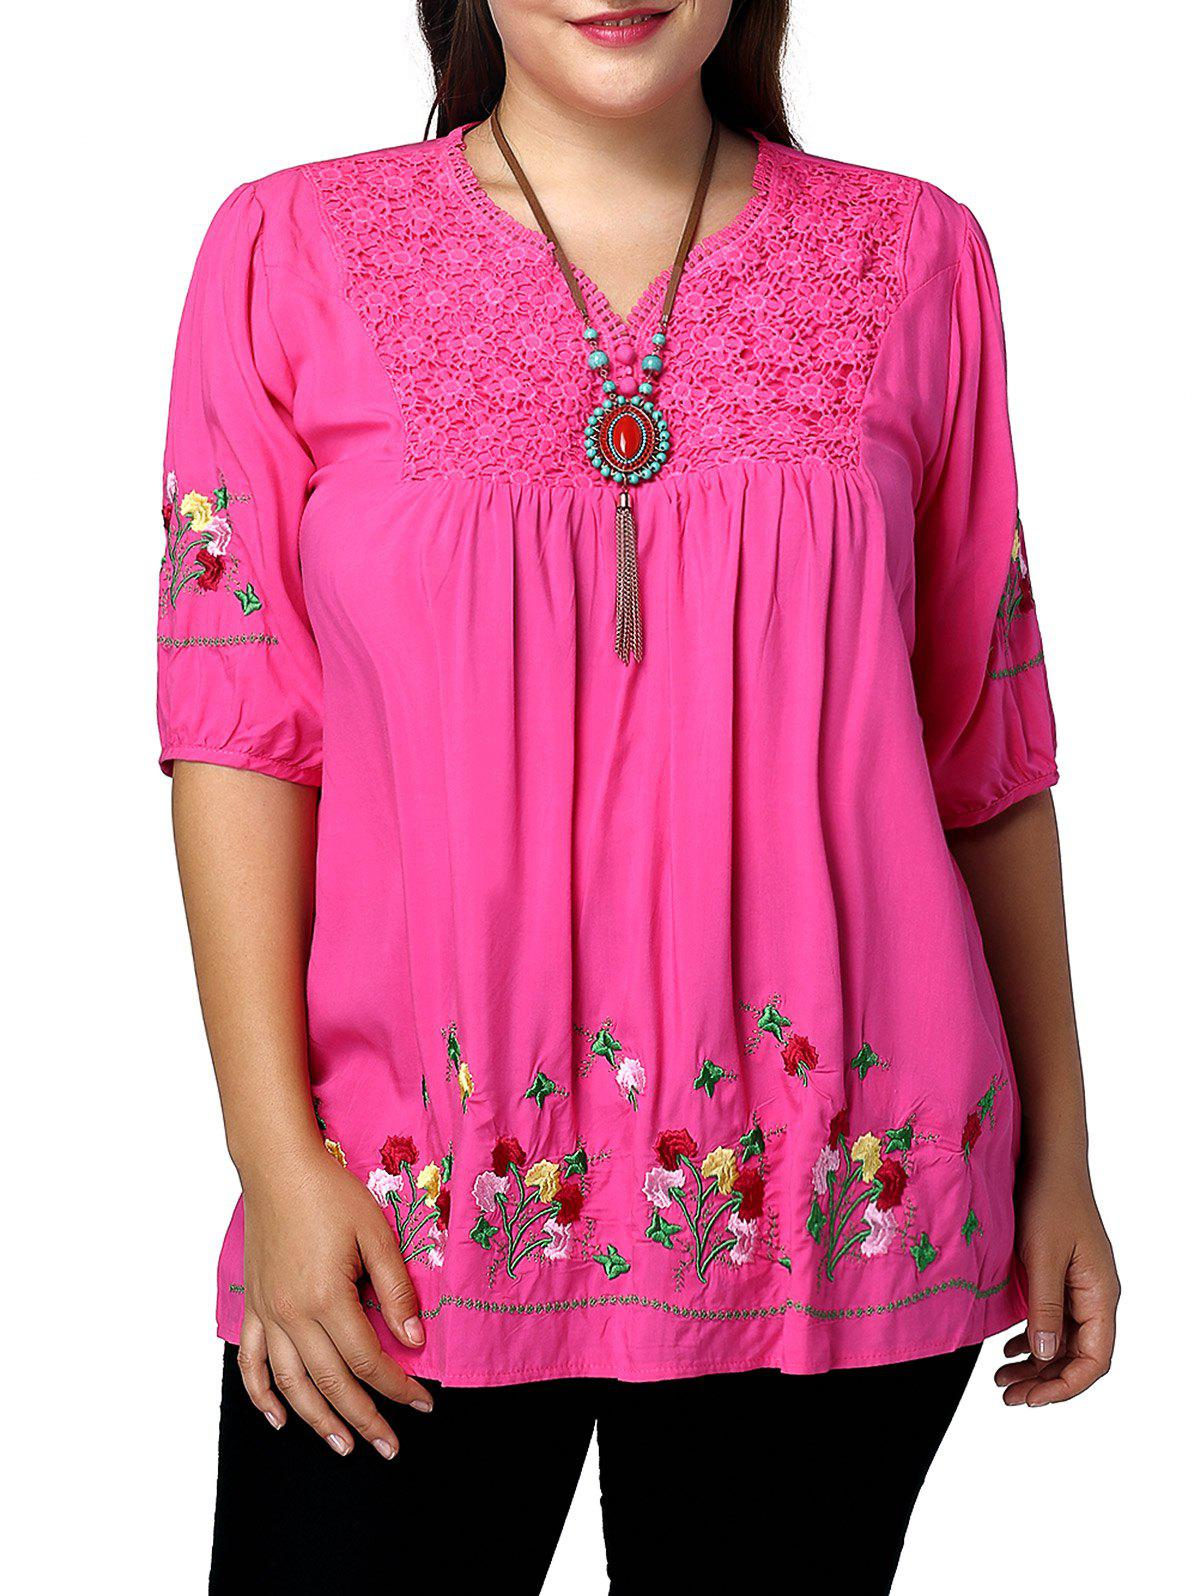 Ethnic Plus Size Flower Embroidered V Neck Women's Blouse - ROSE MADDER 3XL